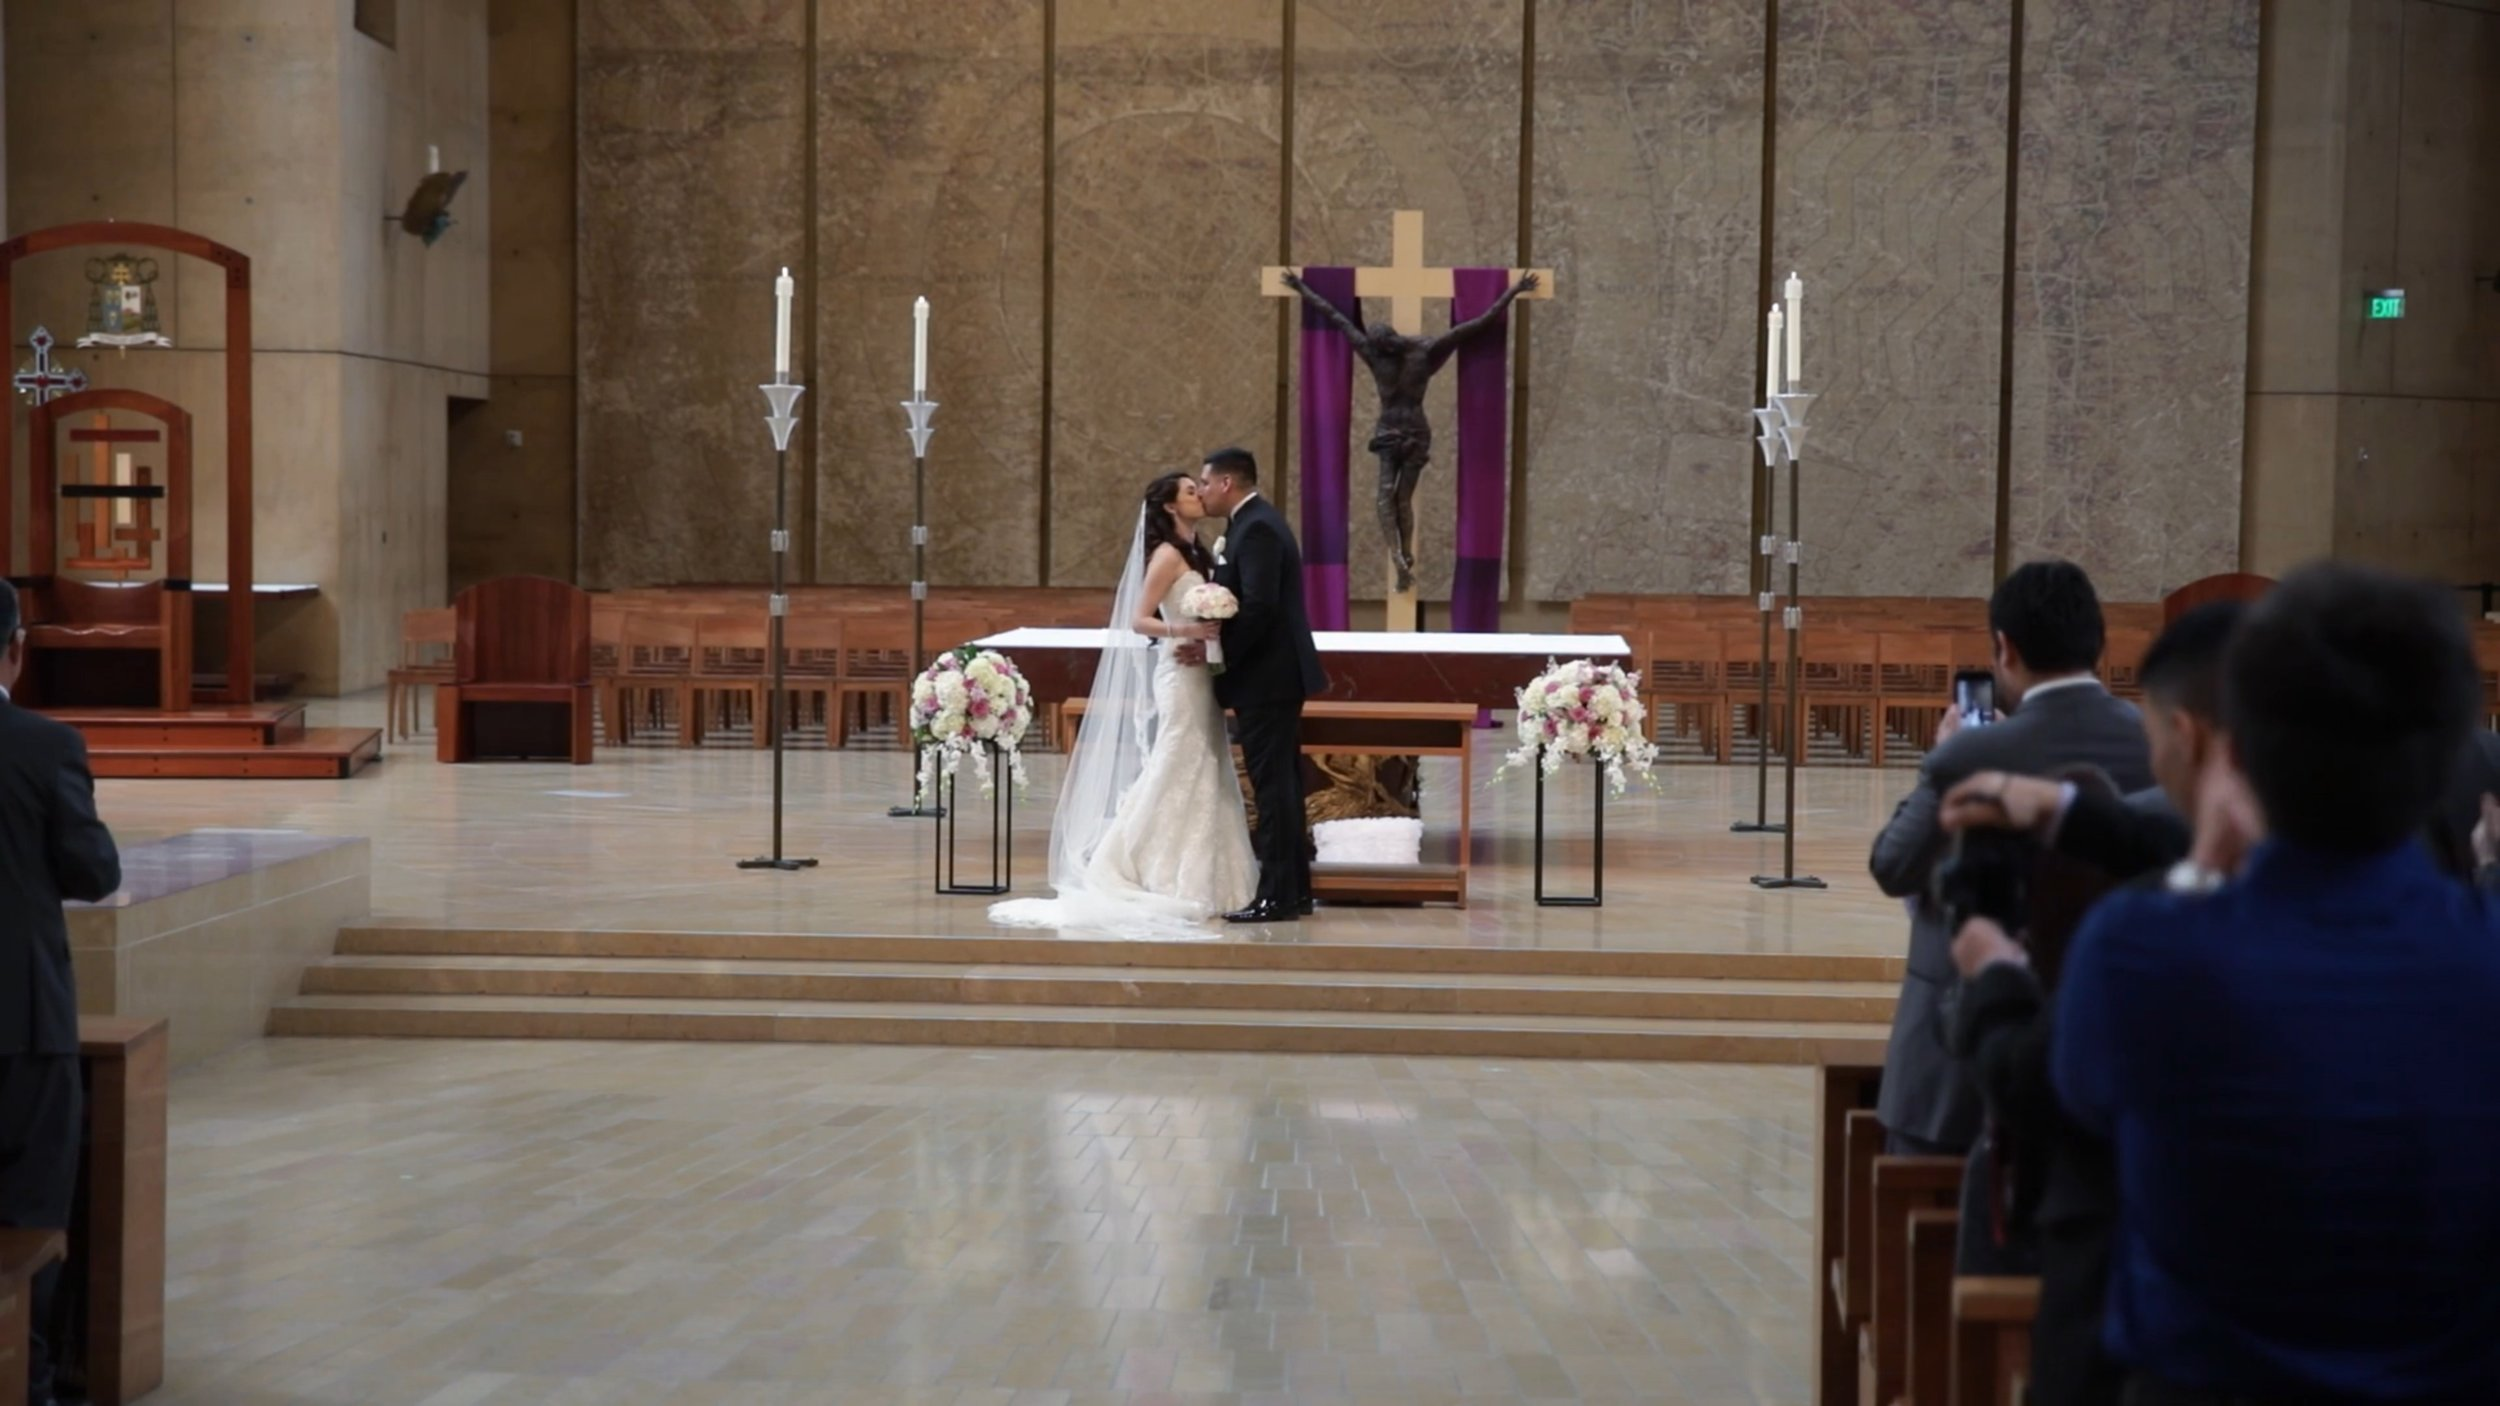 Wedding videography los angeles, CA - Cathedral of Our Lady of the Angels - Newly married couple kissing at the altar.